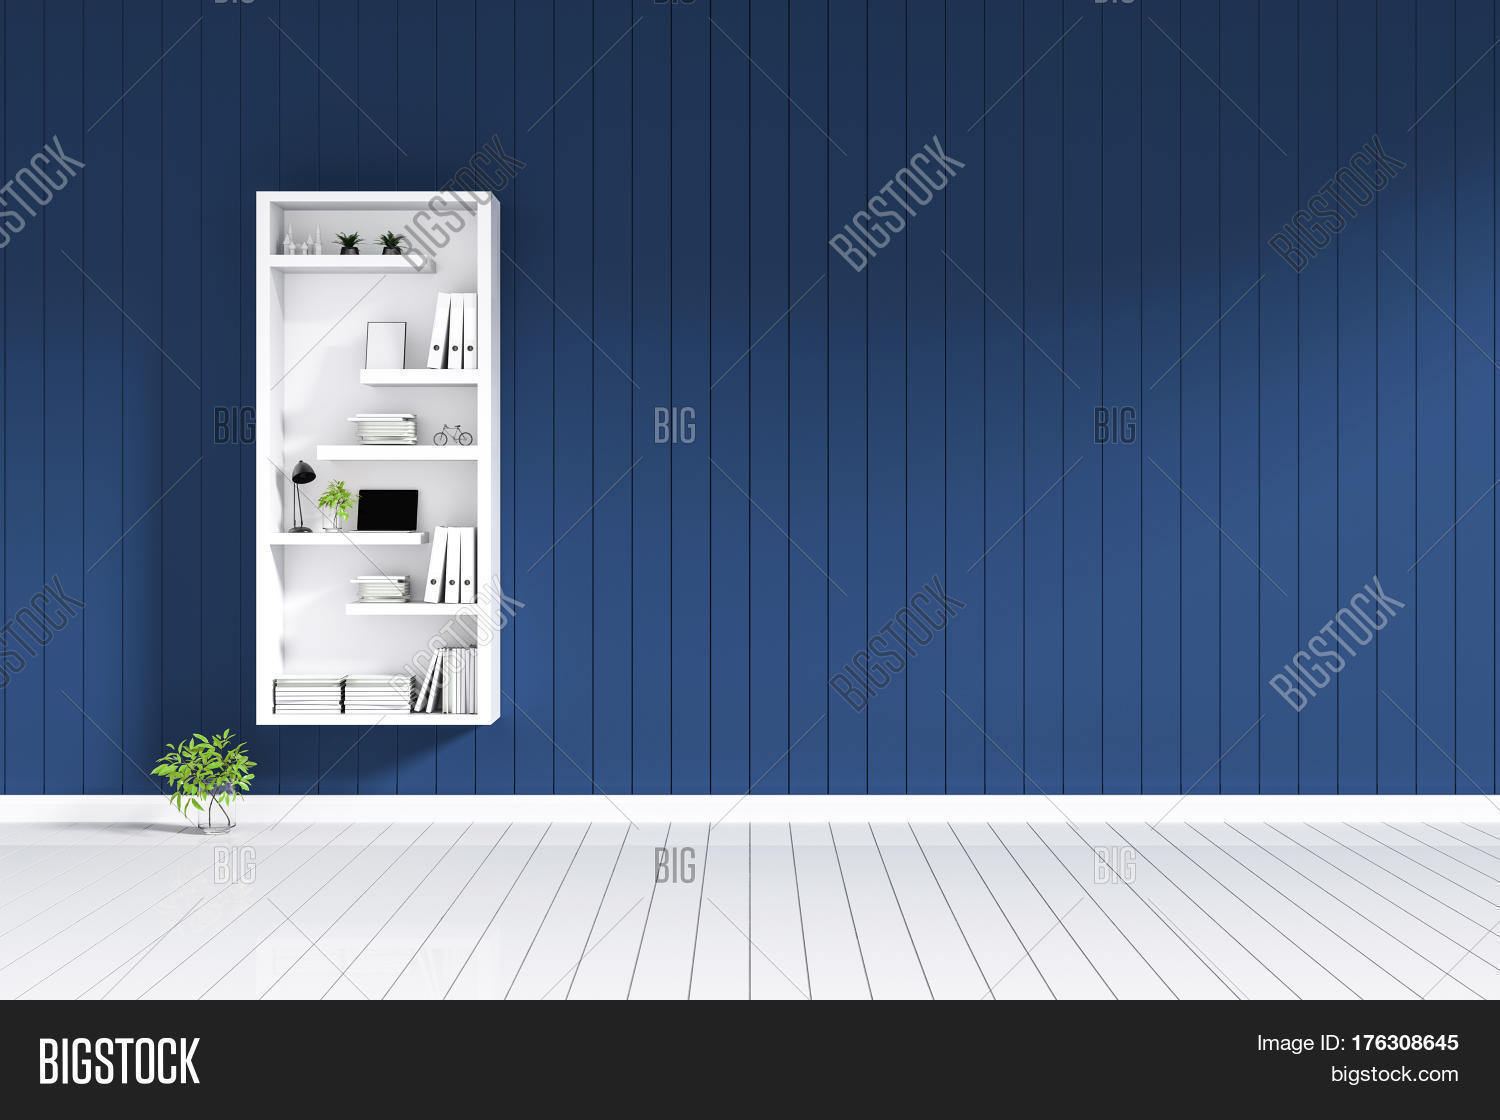 3d,apartment,architecture,background,black,blank,blue,book,comfortable,concrete,contemporary,cute,decor,decoration,design,empty,flat,floor,frame,furniture,green,home,house,illustration,indoor,interior,lifestyle,light,living,loft,minimalistic,modern,nerd,render,room,shelf,sofa,space,wall,white,wood,wooden